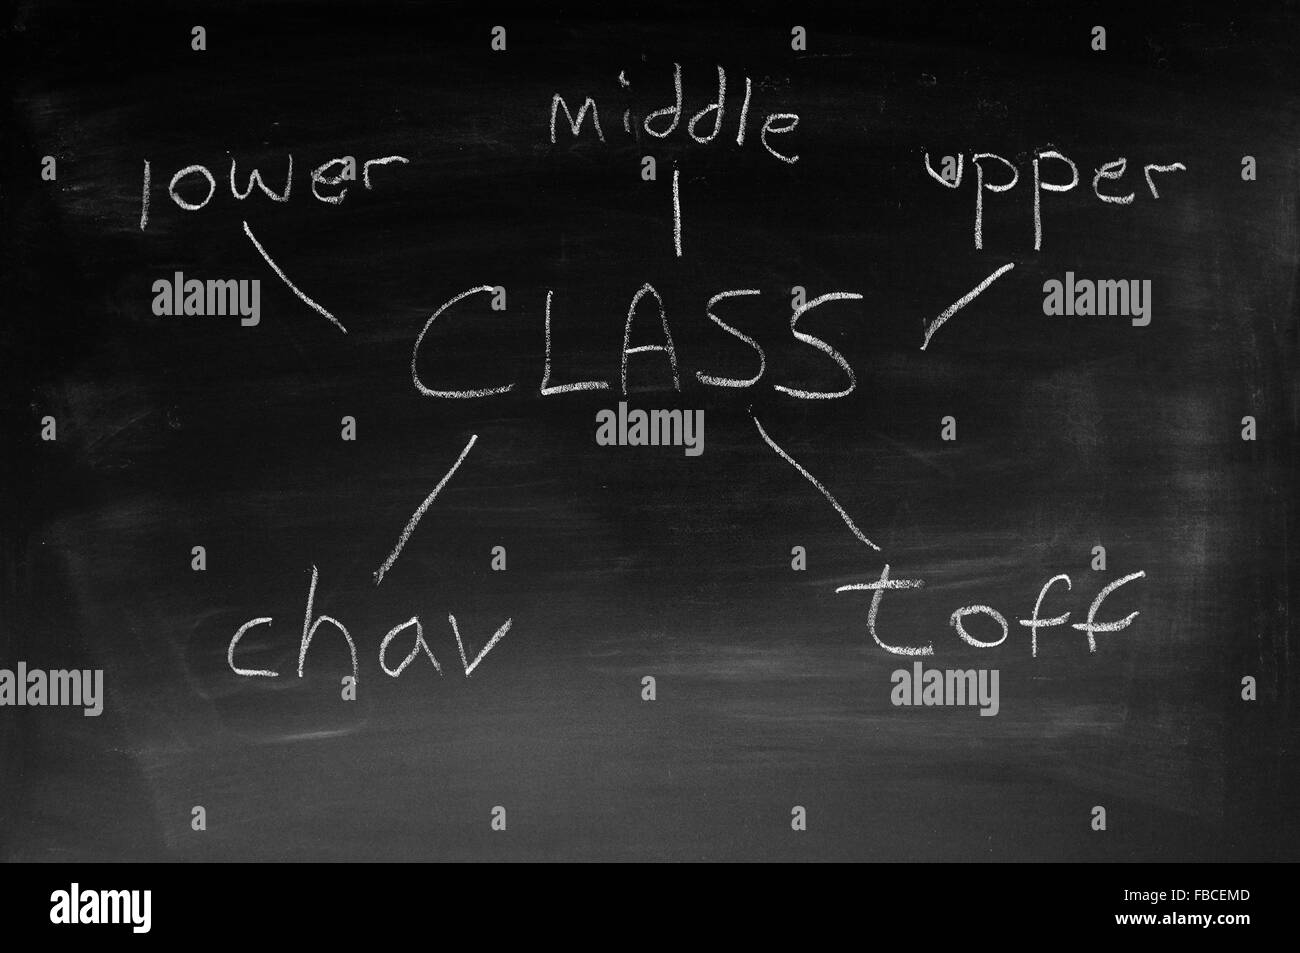 A word association diagram about class drawn on a blackboard. - Stock Image